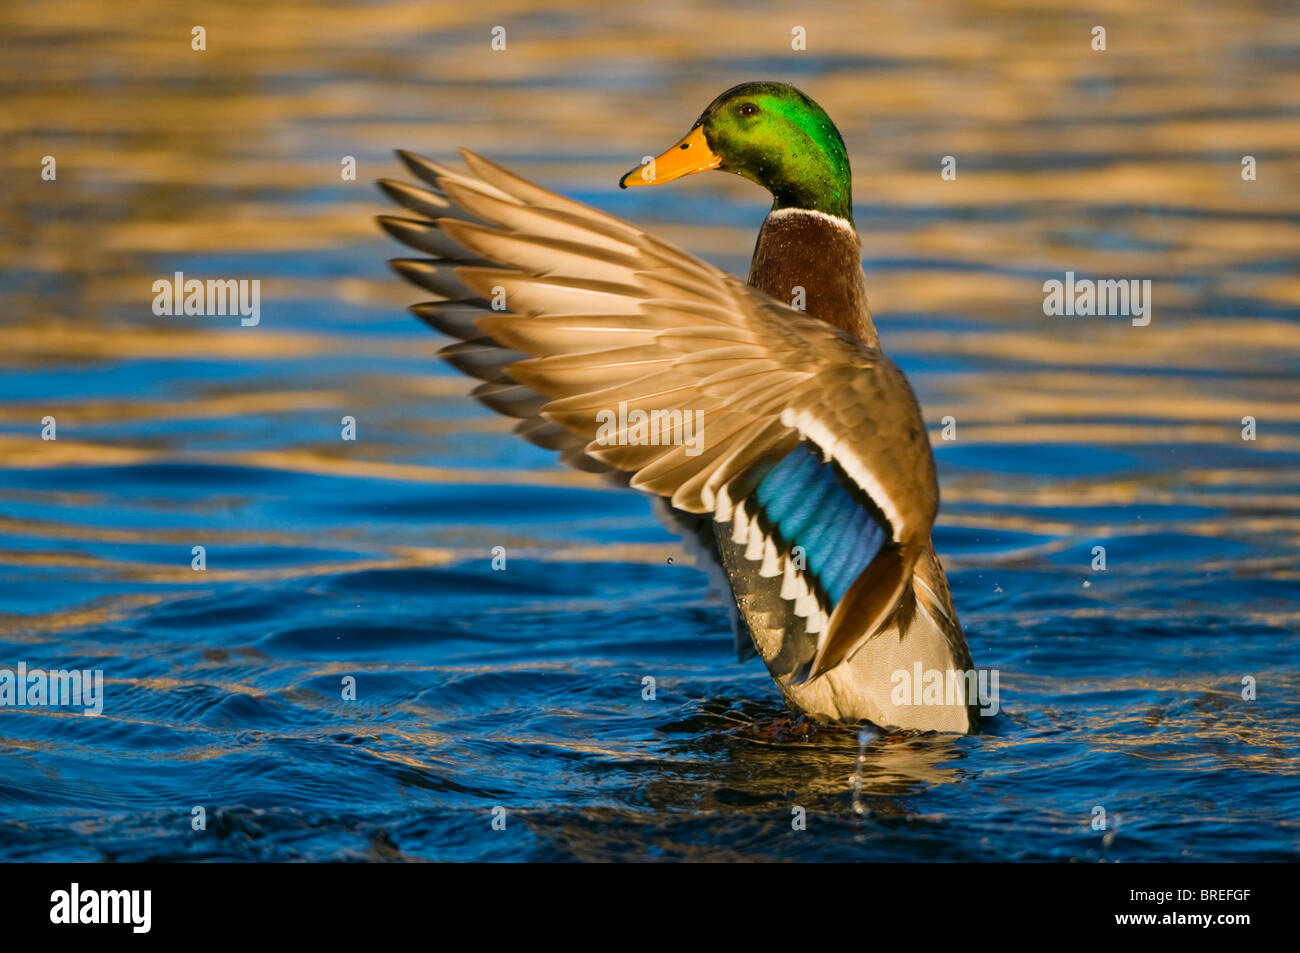 Mallard (Anas platyrhynchos), drake flapping its wings, Tiveden National Park, Sweden, Scandinavia, Europe - Stock Image